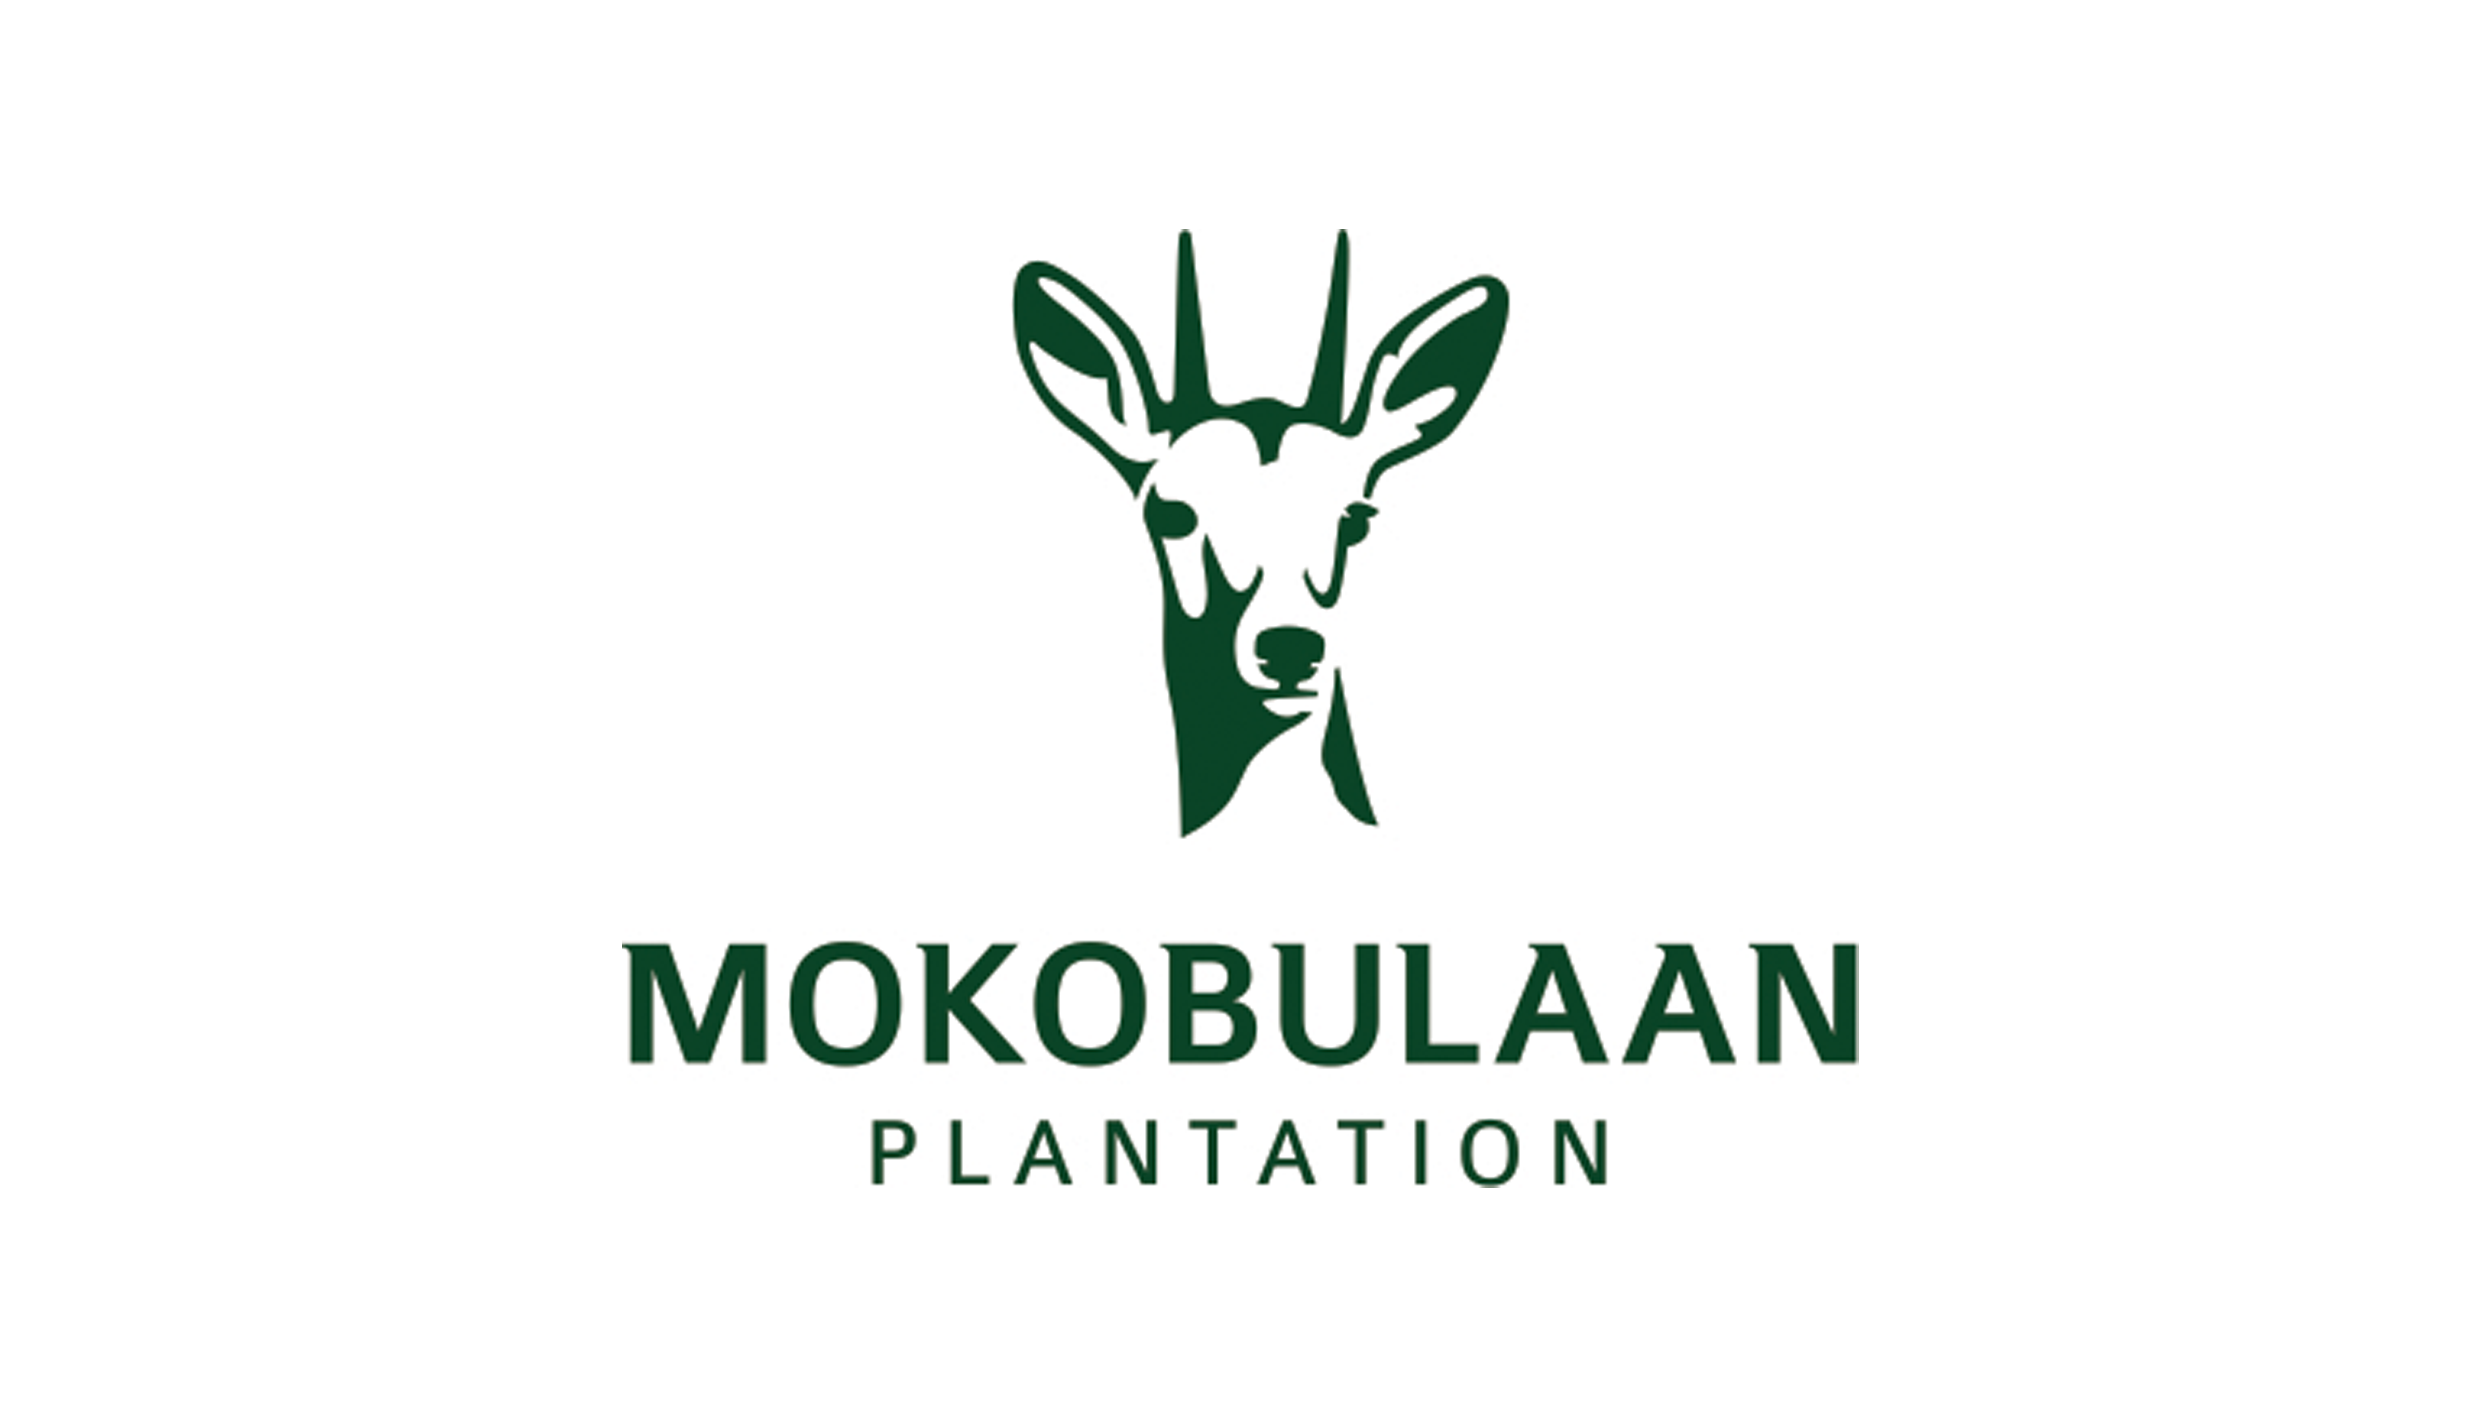 Mokobulaan Plantation